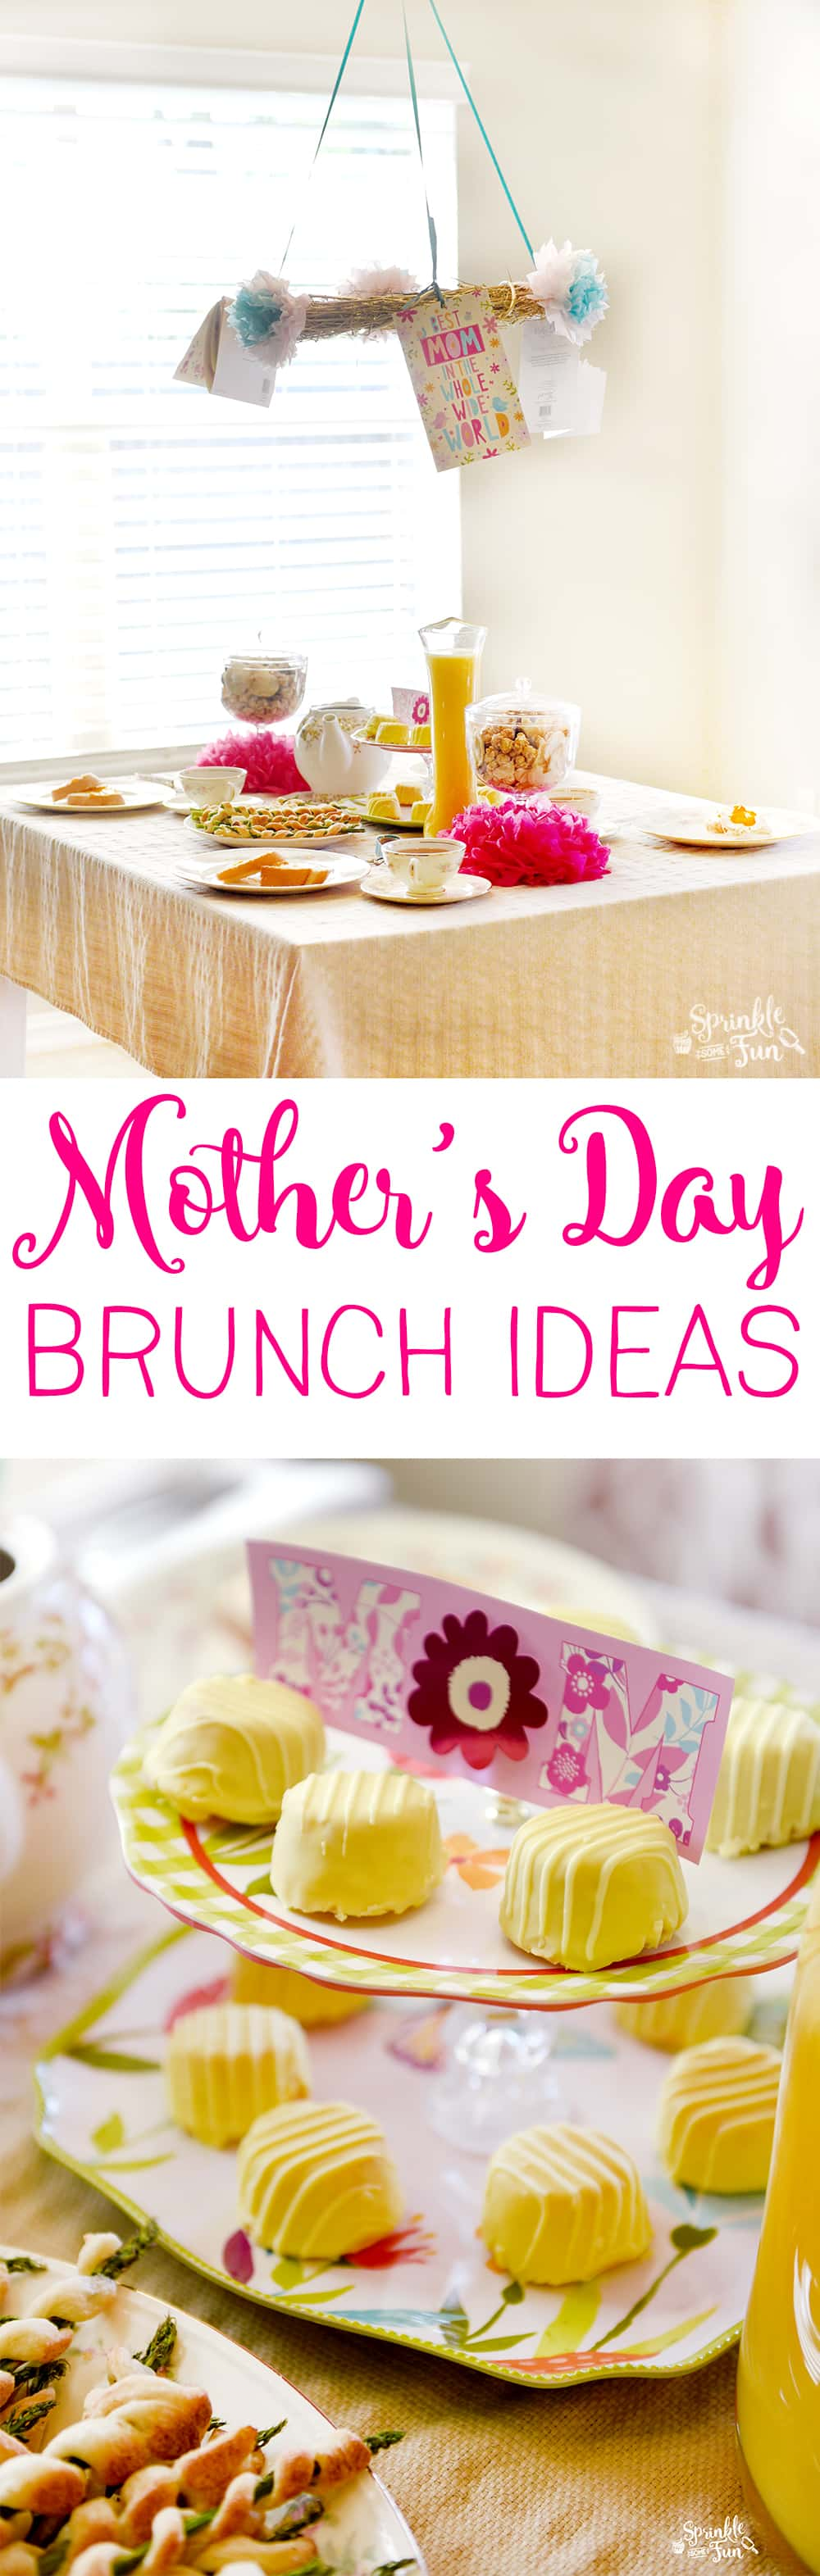 Mother's Day Brunch Ideas - Sprinkle Some Fun